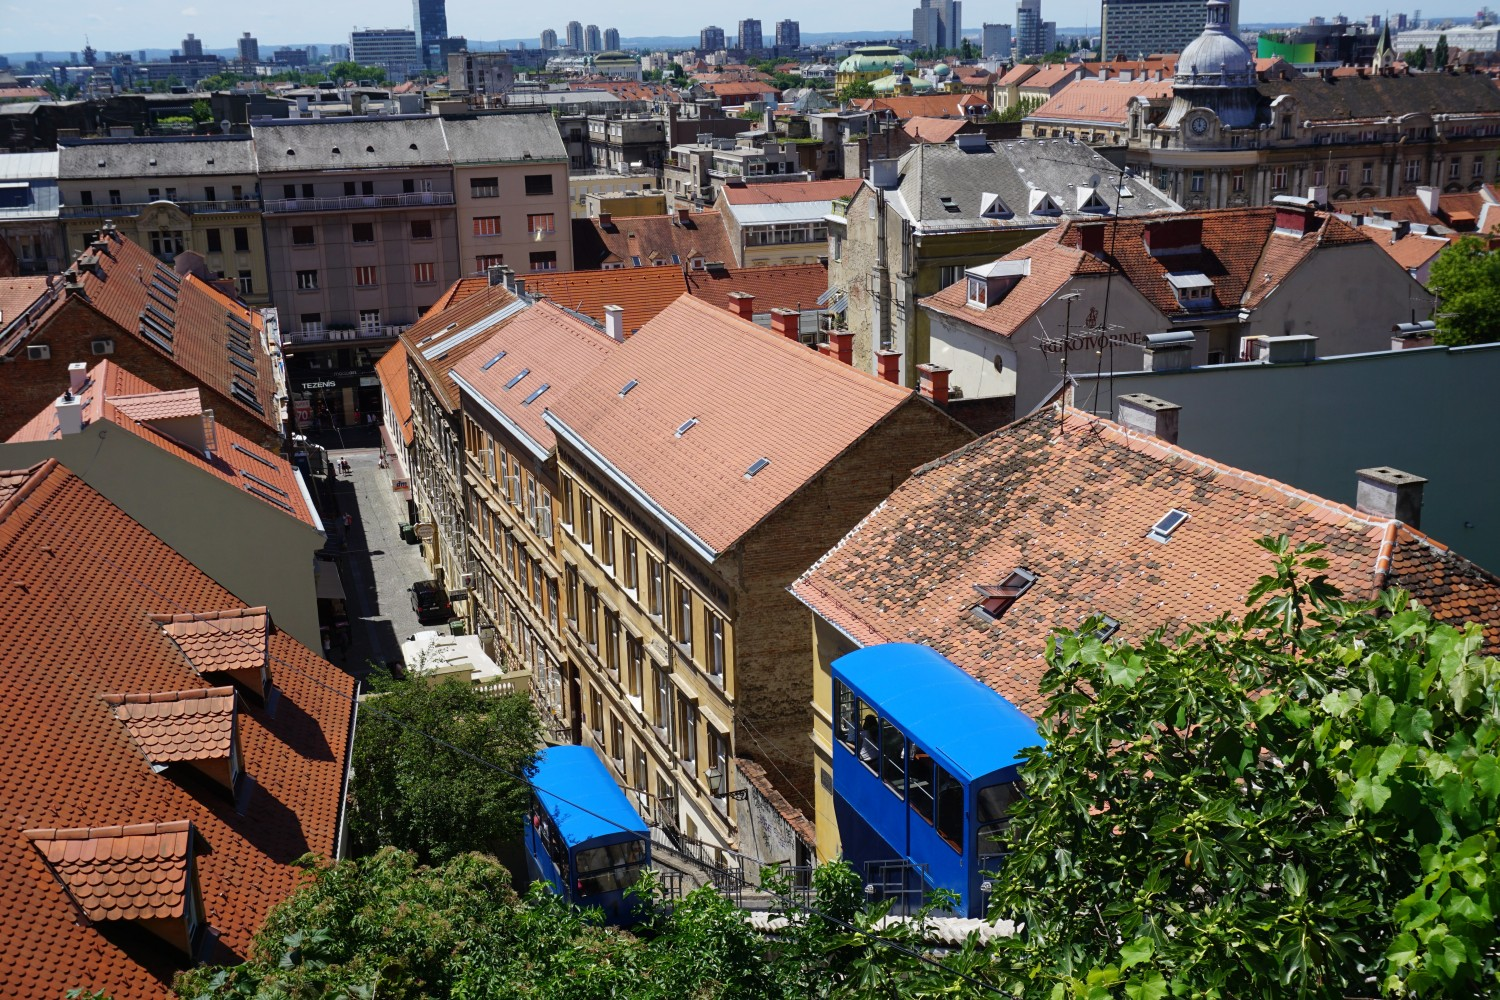 The funicular in Zagreb is so cool. Read our guide to the best things to do in Croatia's capital city.